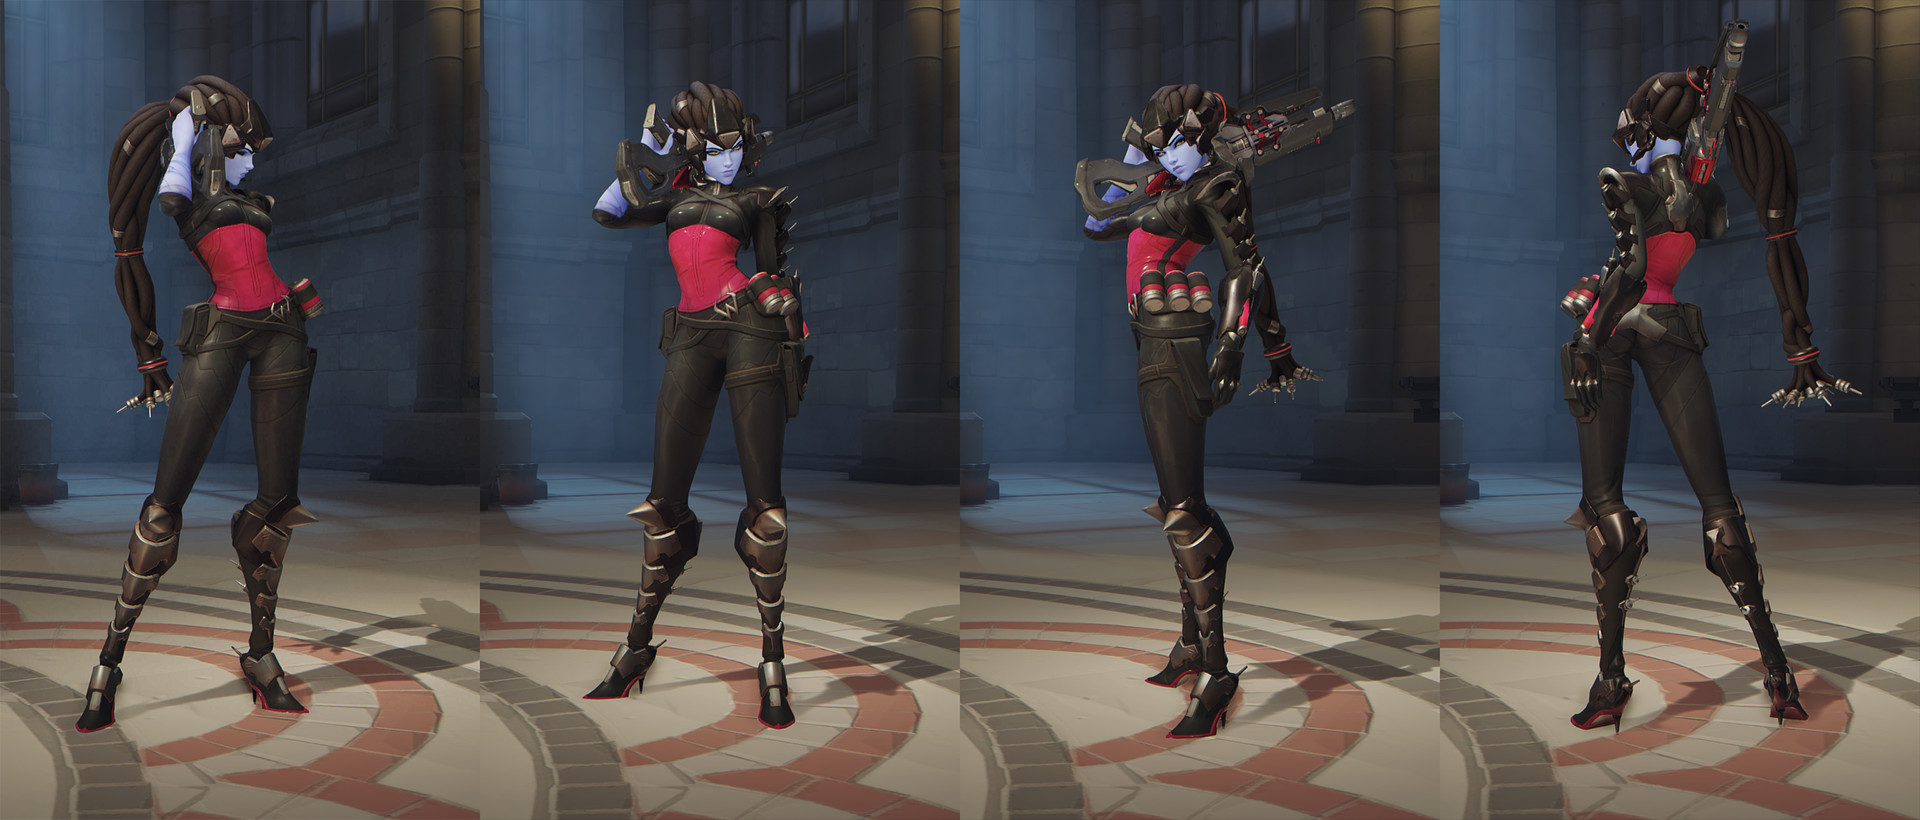 Overwatch skin Widowmaker Noire from Origins edition PC